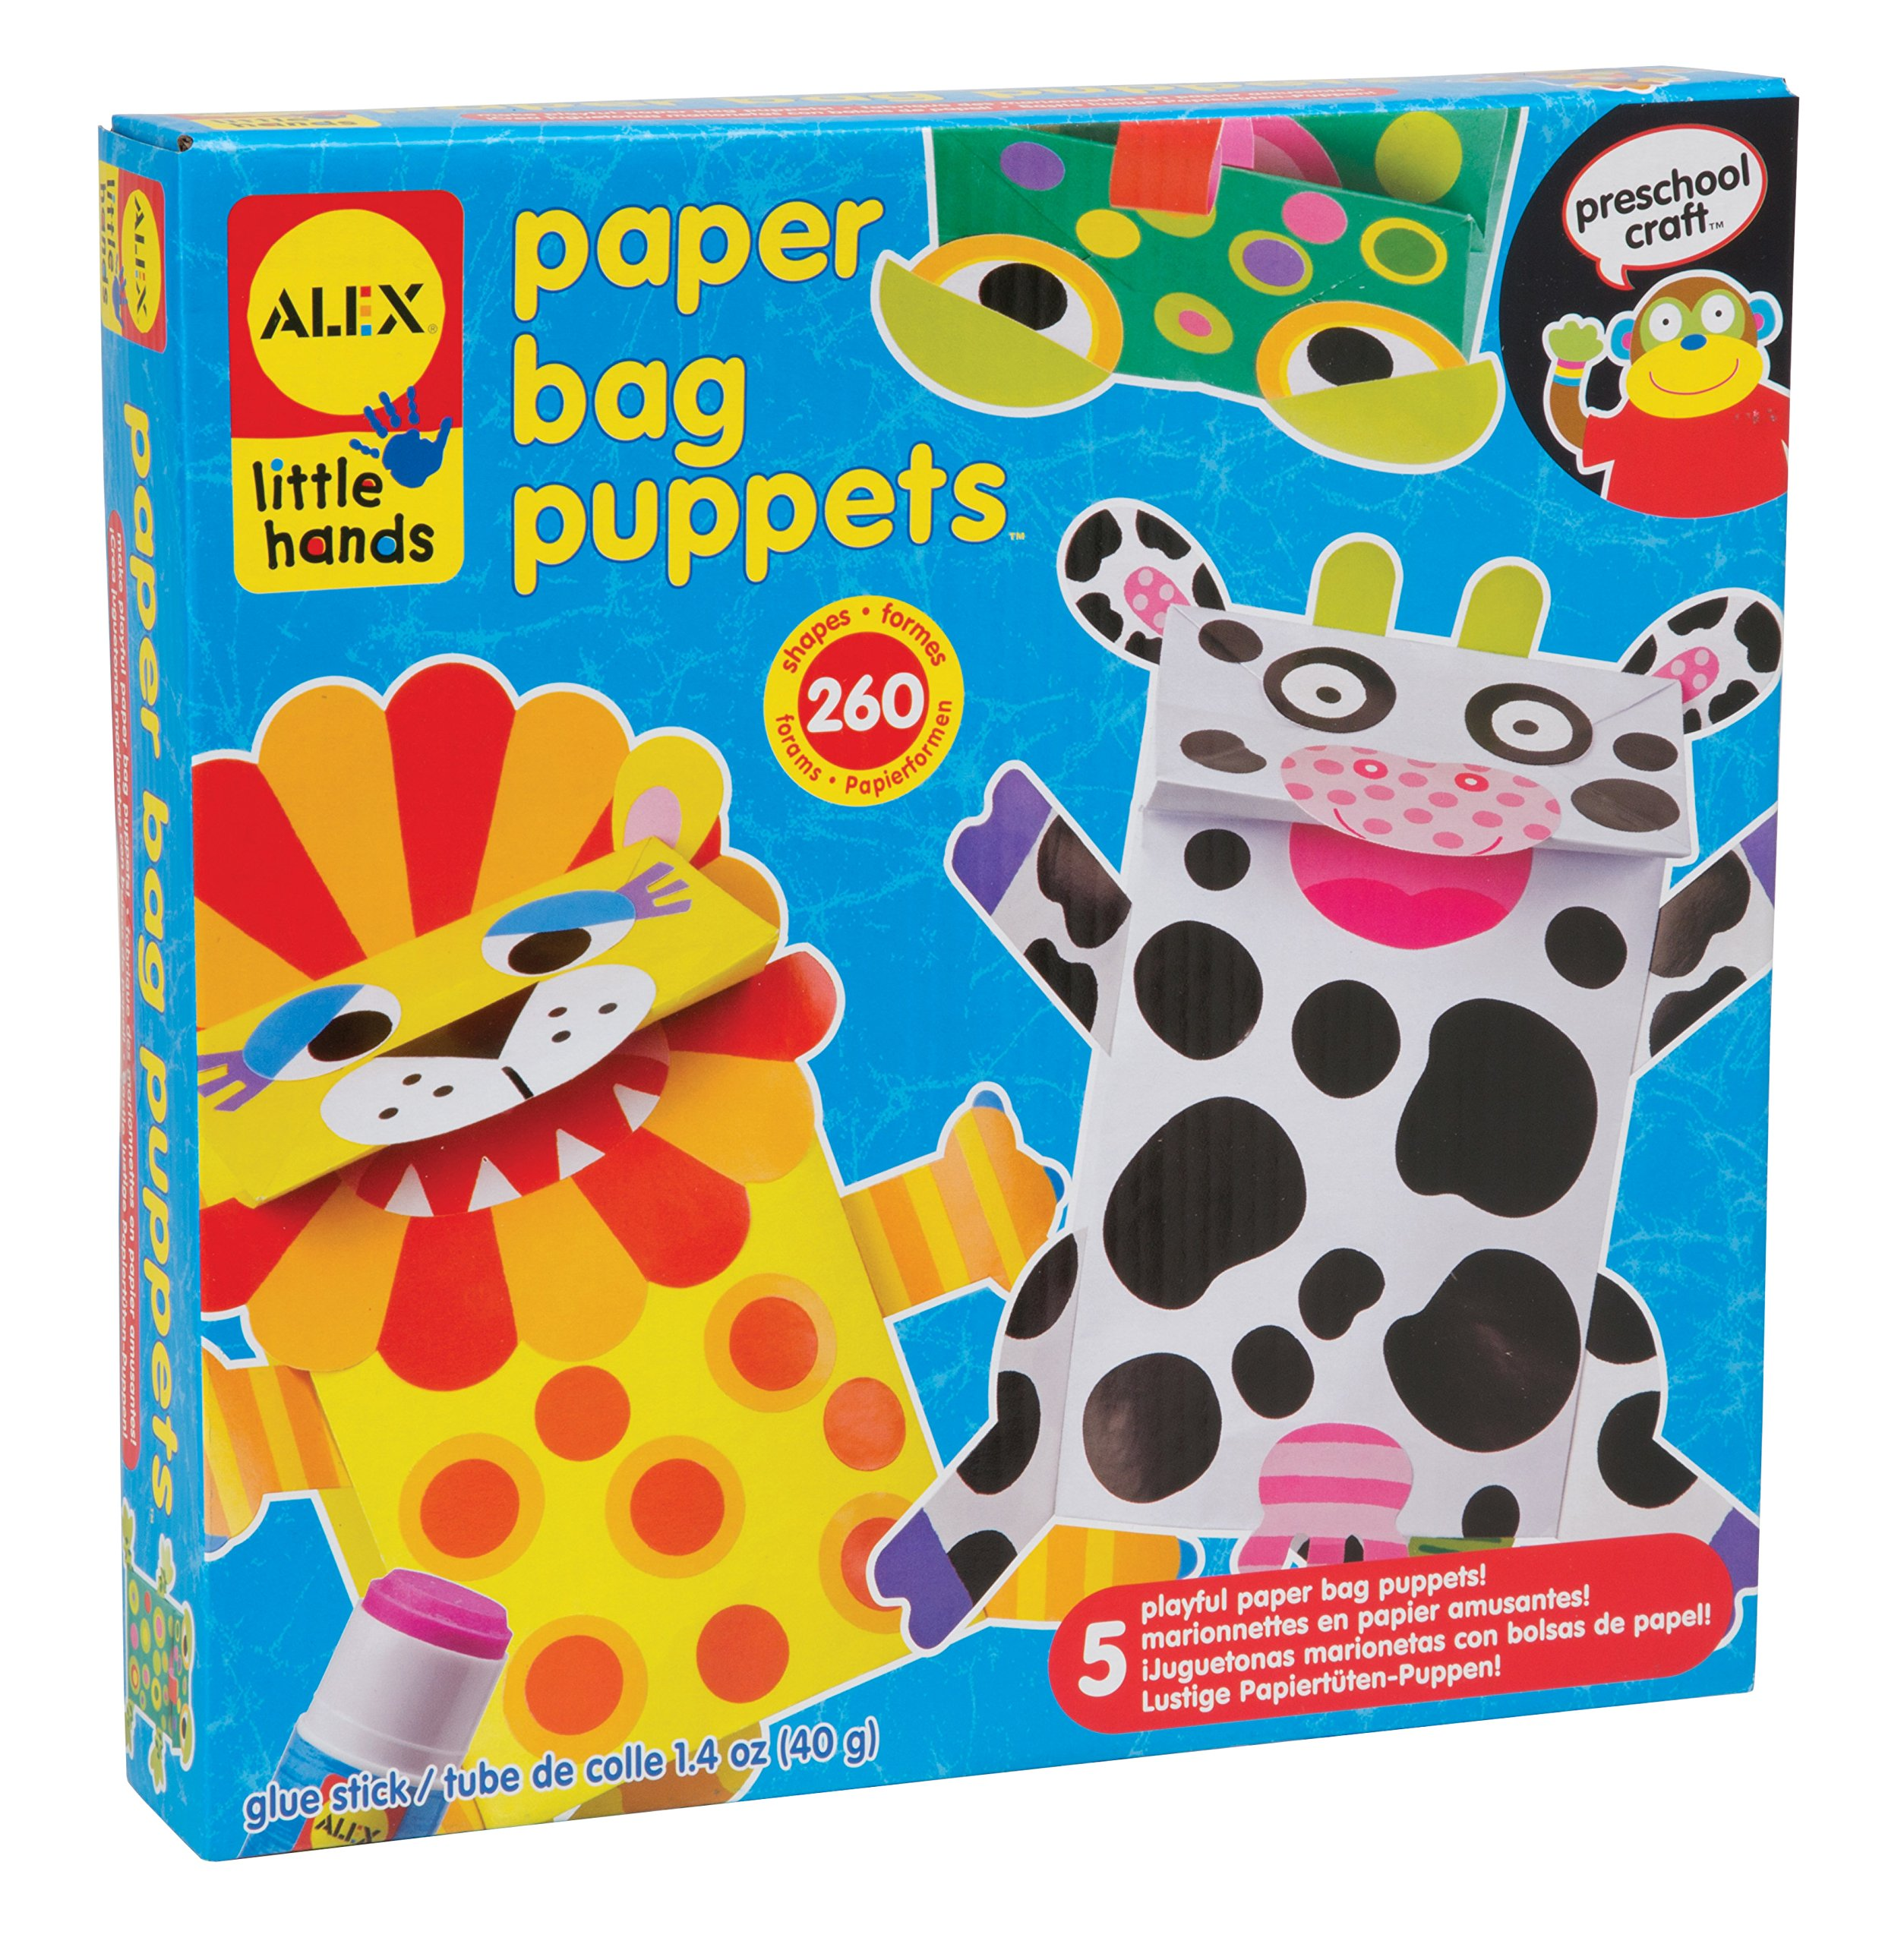 Buy Paper Bag Puppets Now!